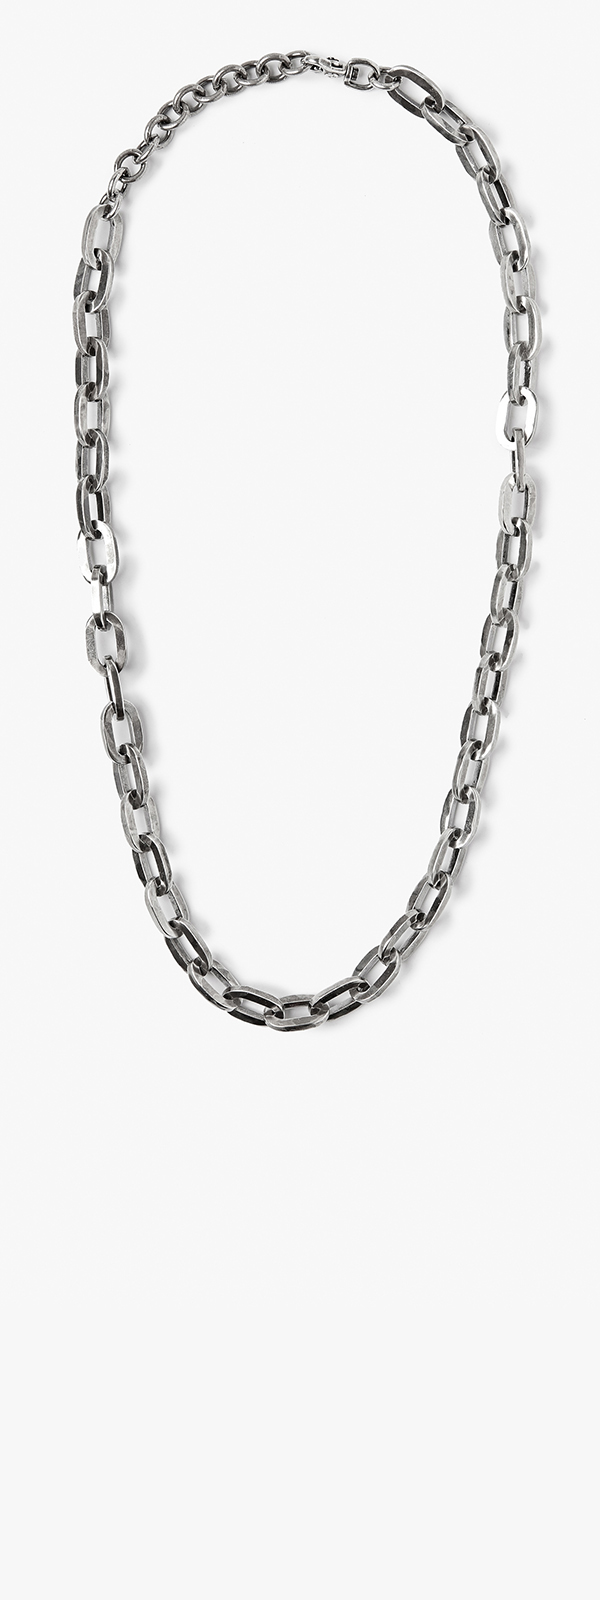 Image of Mixed Chain Necklace 104